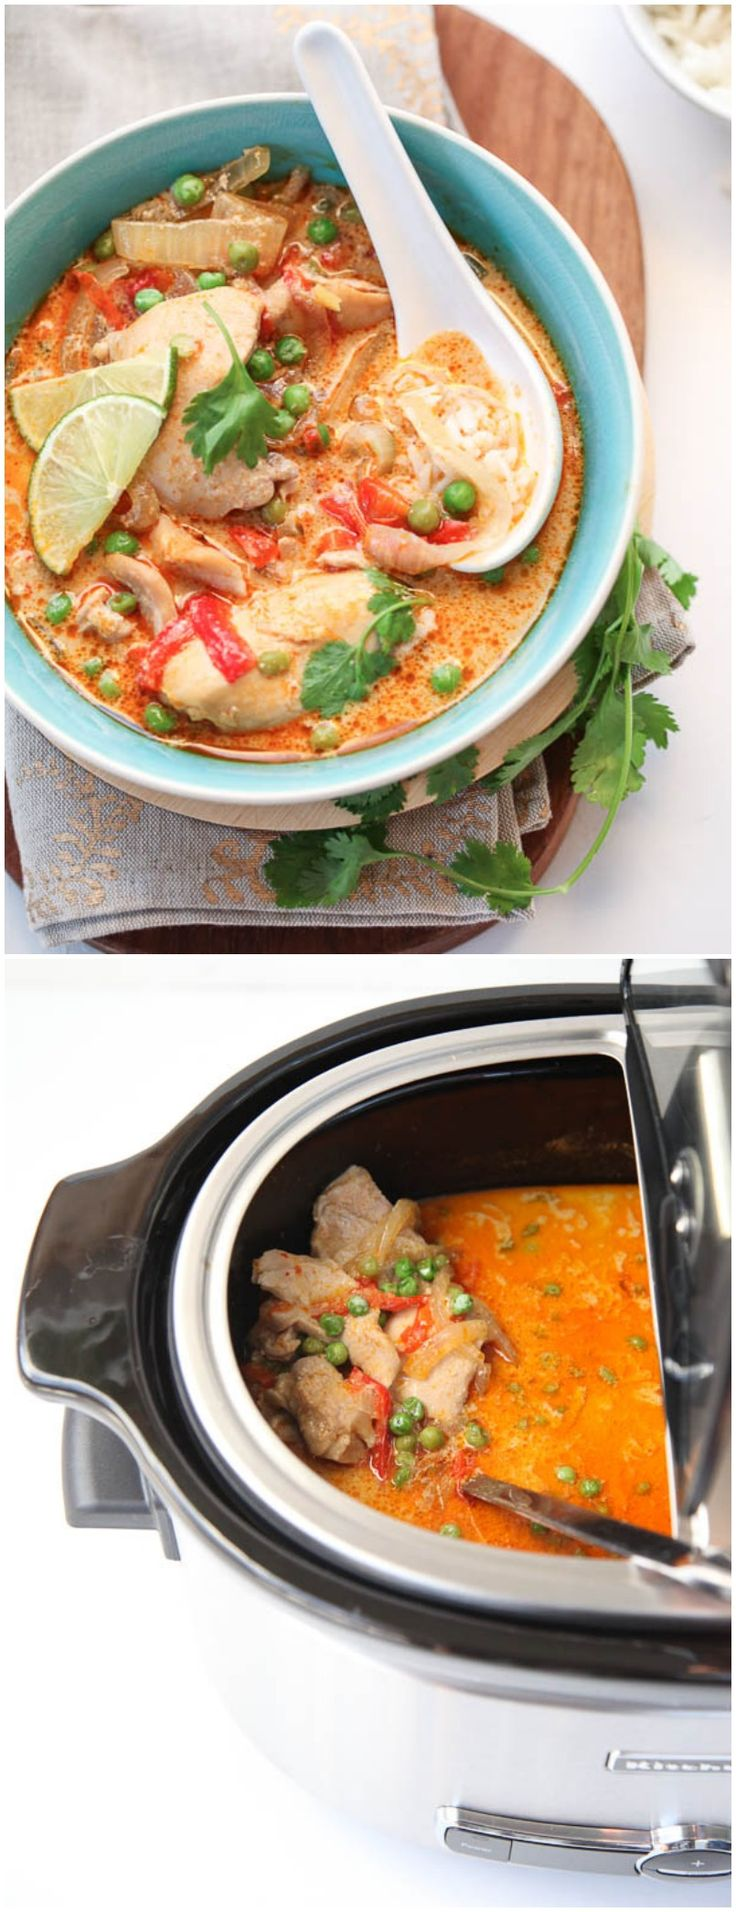 ... Chicken Soups, True One Pots, One Pots Meals, Thai Chicken Soup, Meals